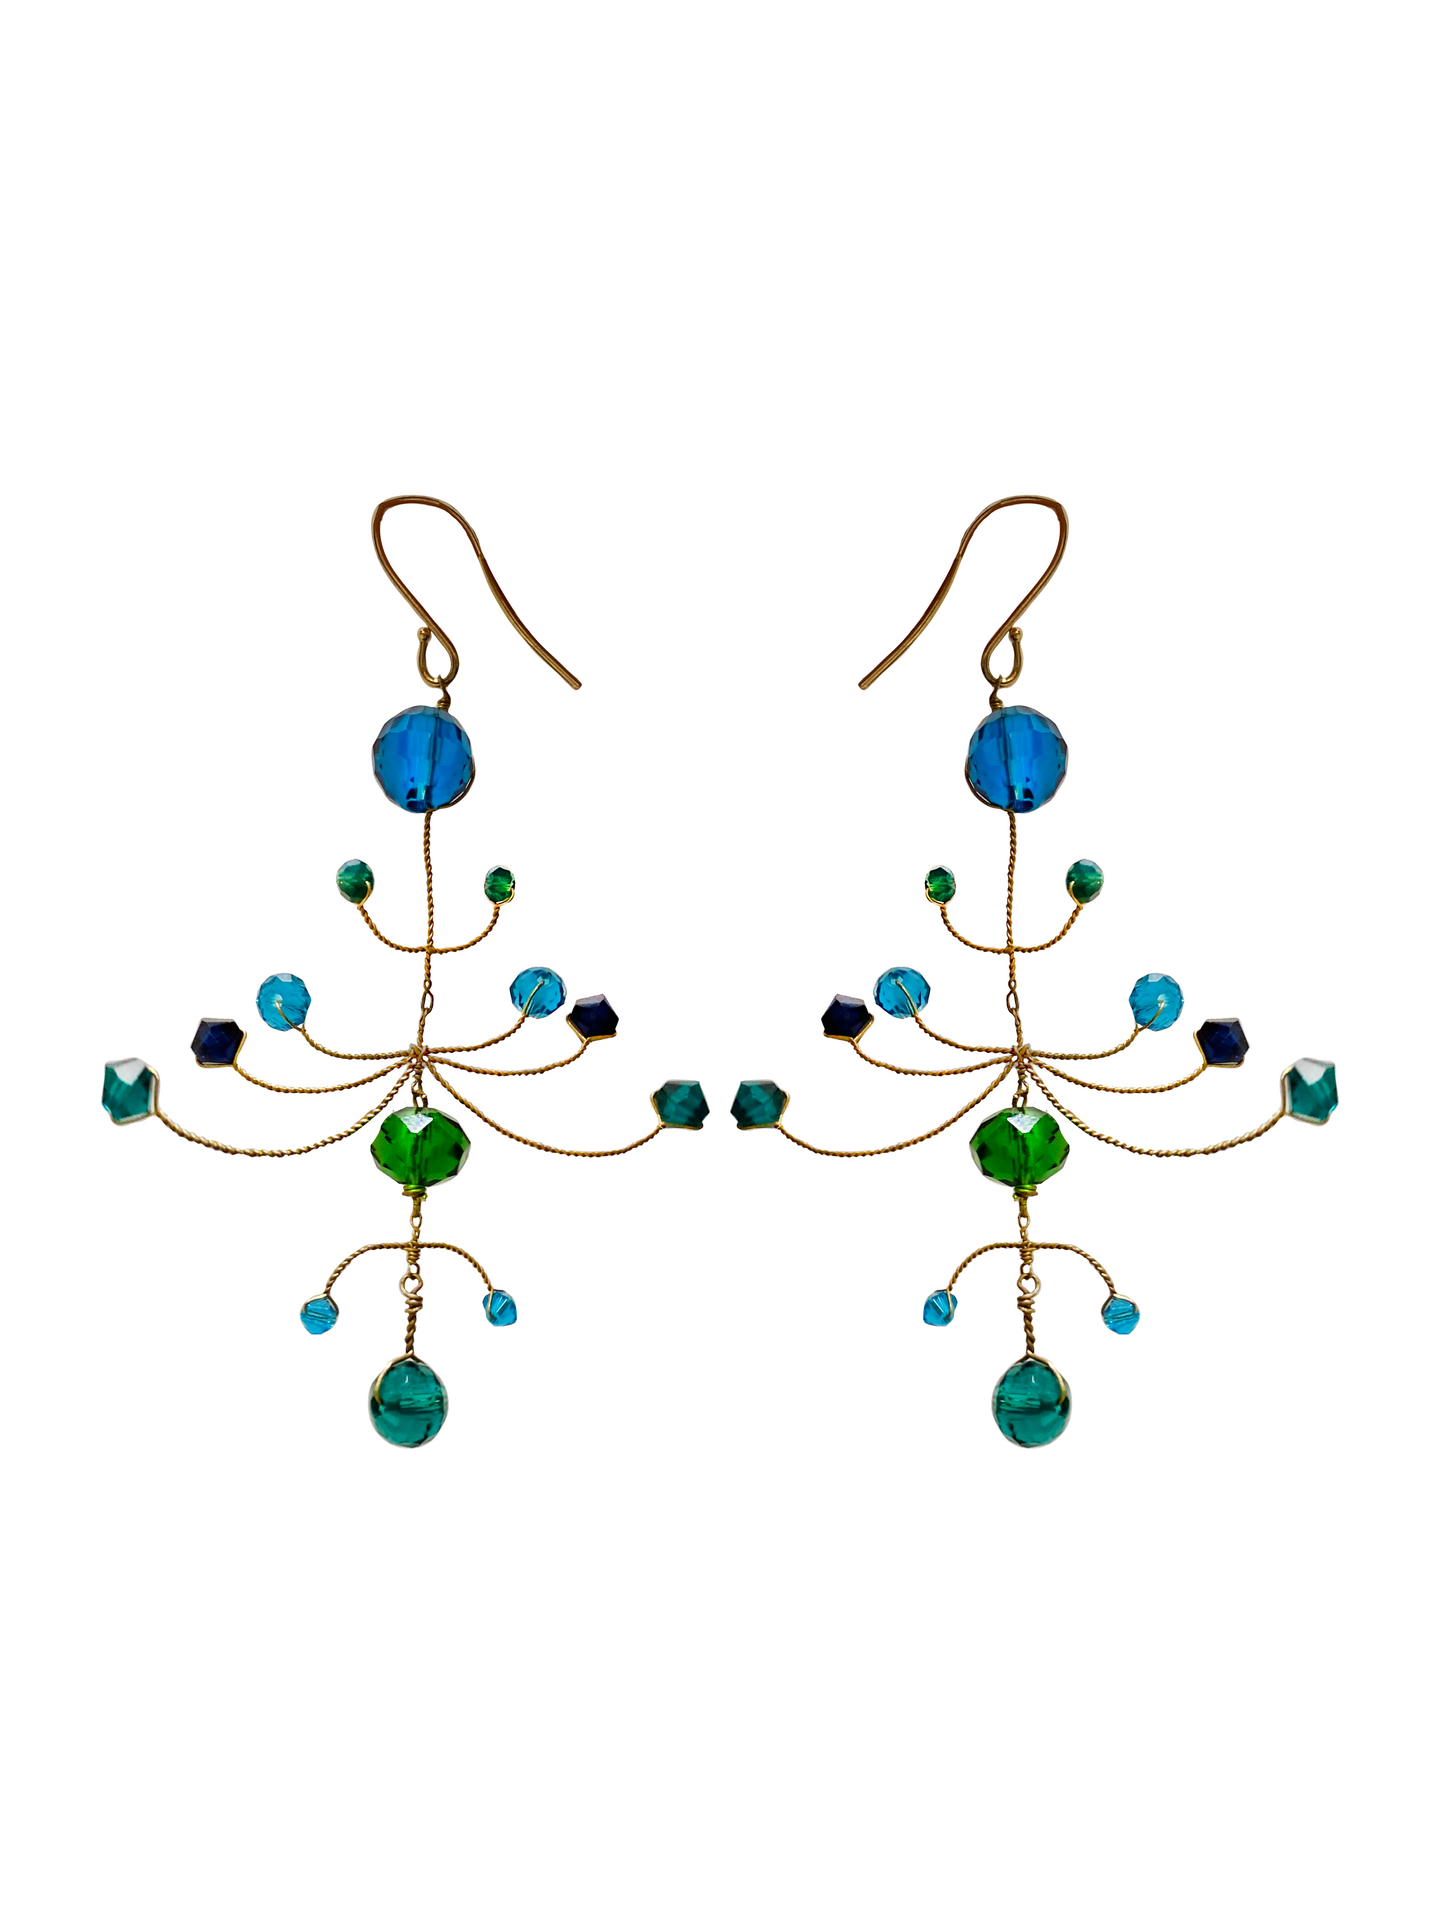 Chandelier Earrings - Outlette Jewelry